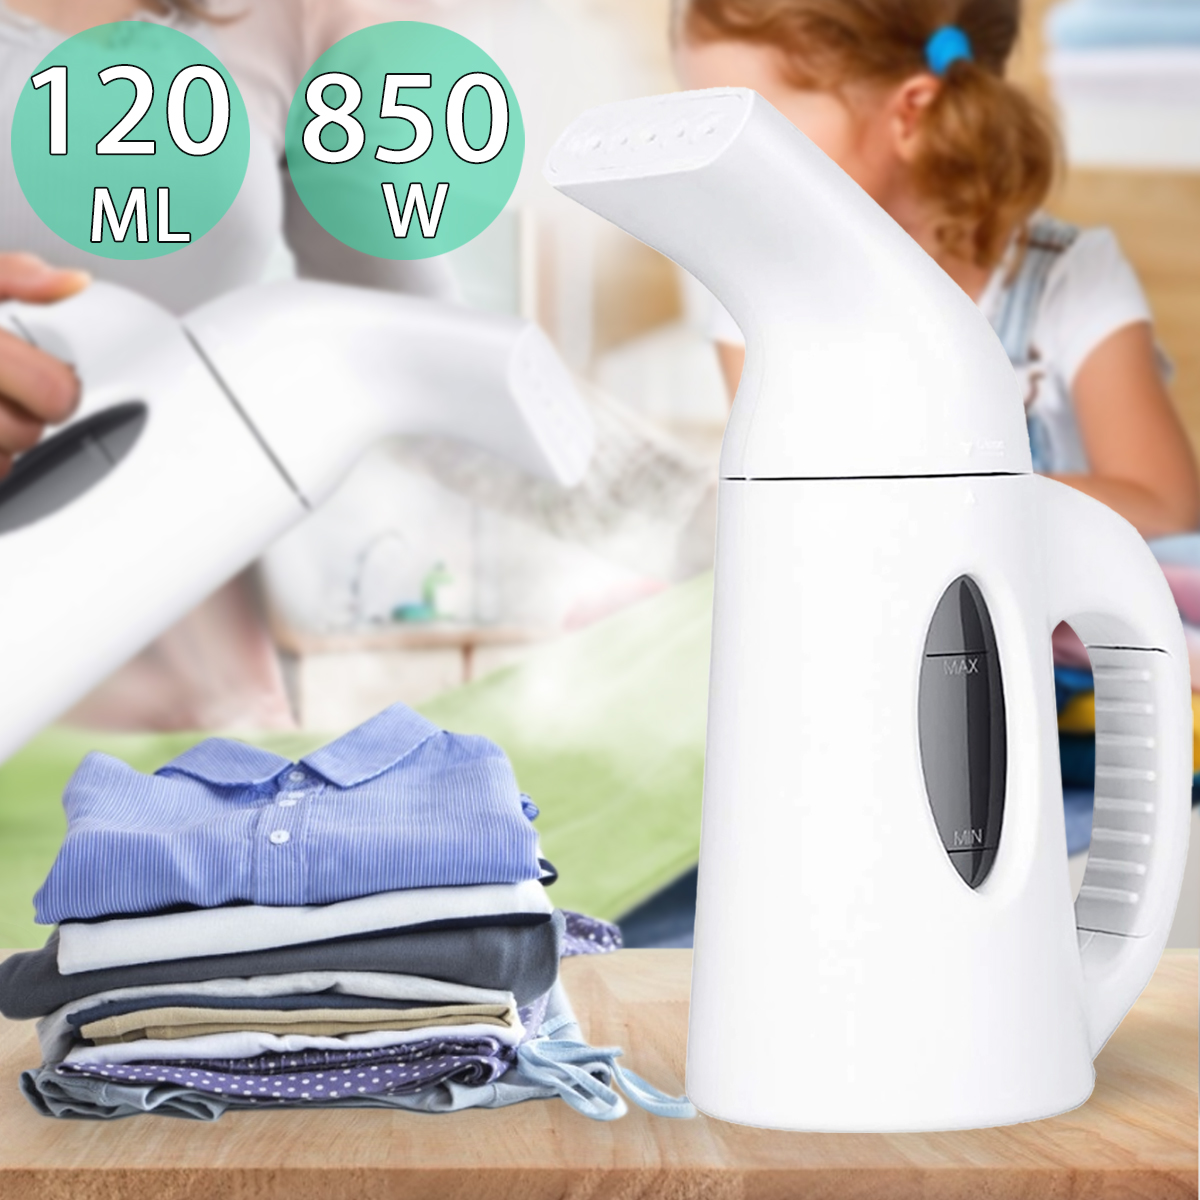 110V 220V New Mini Steam Iron Handheld dry Cleaning Brush Clothes Household Appliance Portable Travel Garment Steamers Clothes